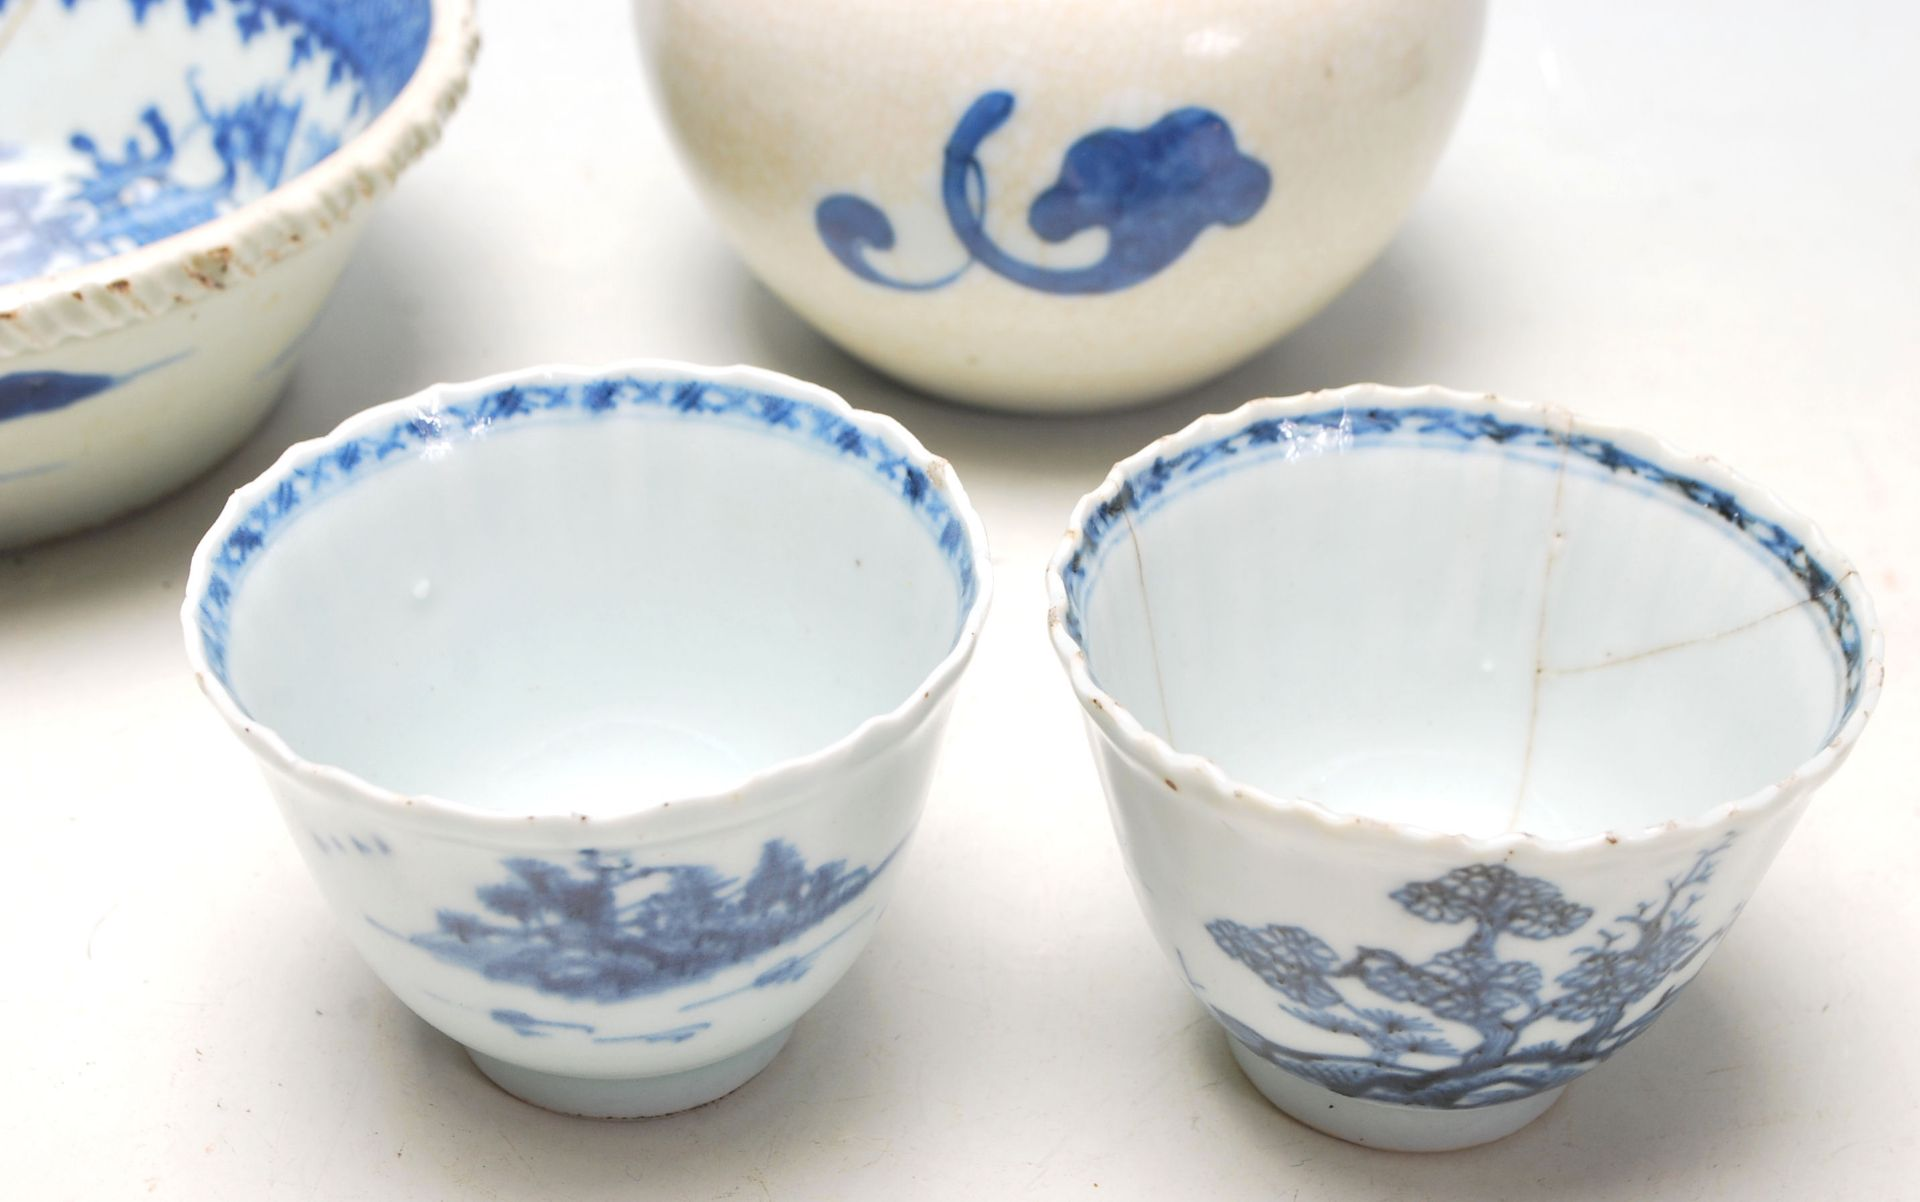 Los 101 - Aquantityof 19th century English blue and white ceramics to include bowl, tea cup, rice bowl and